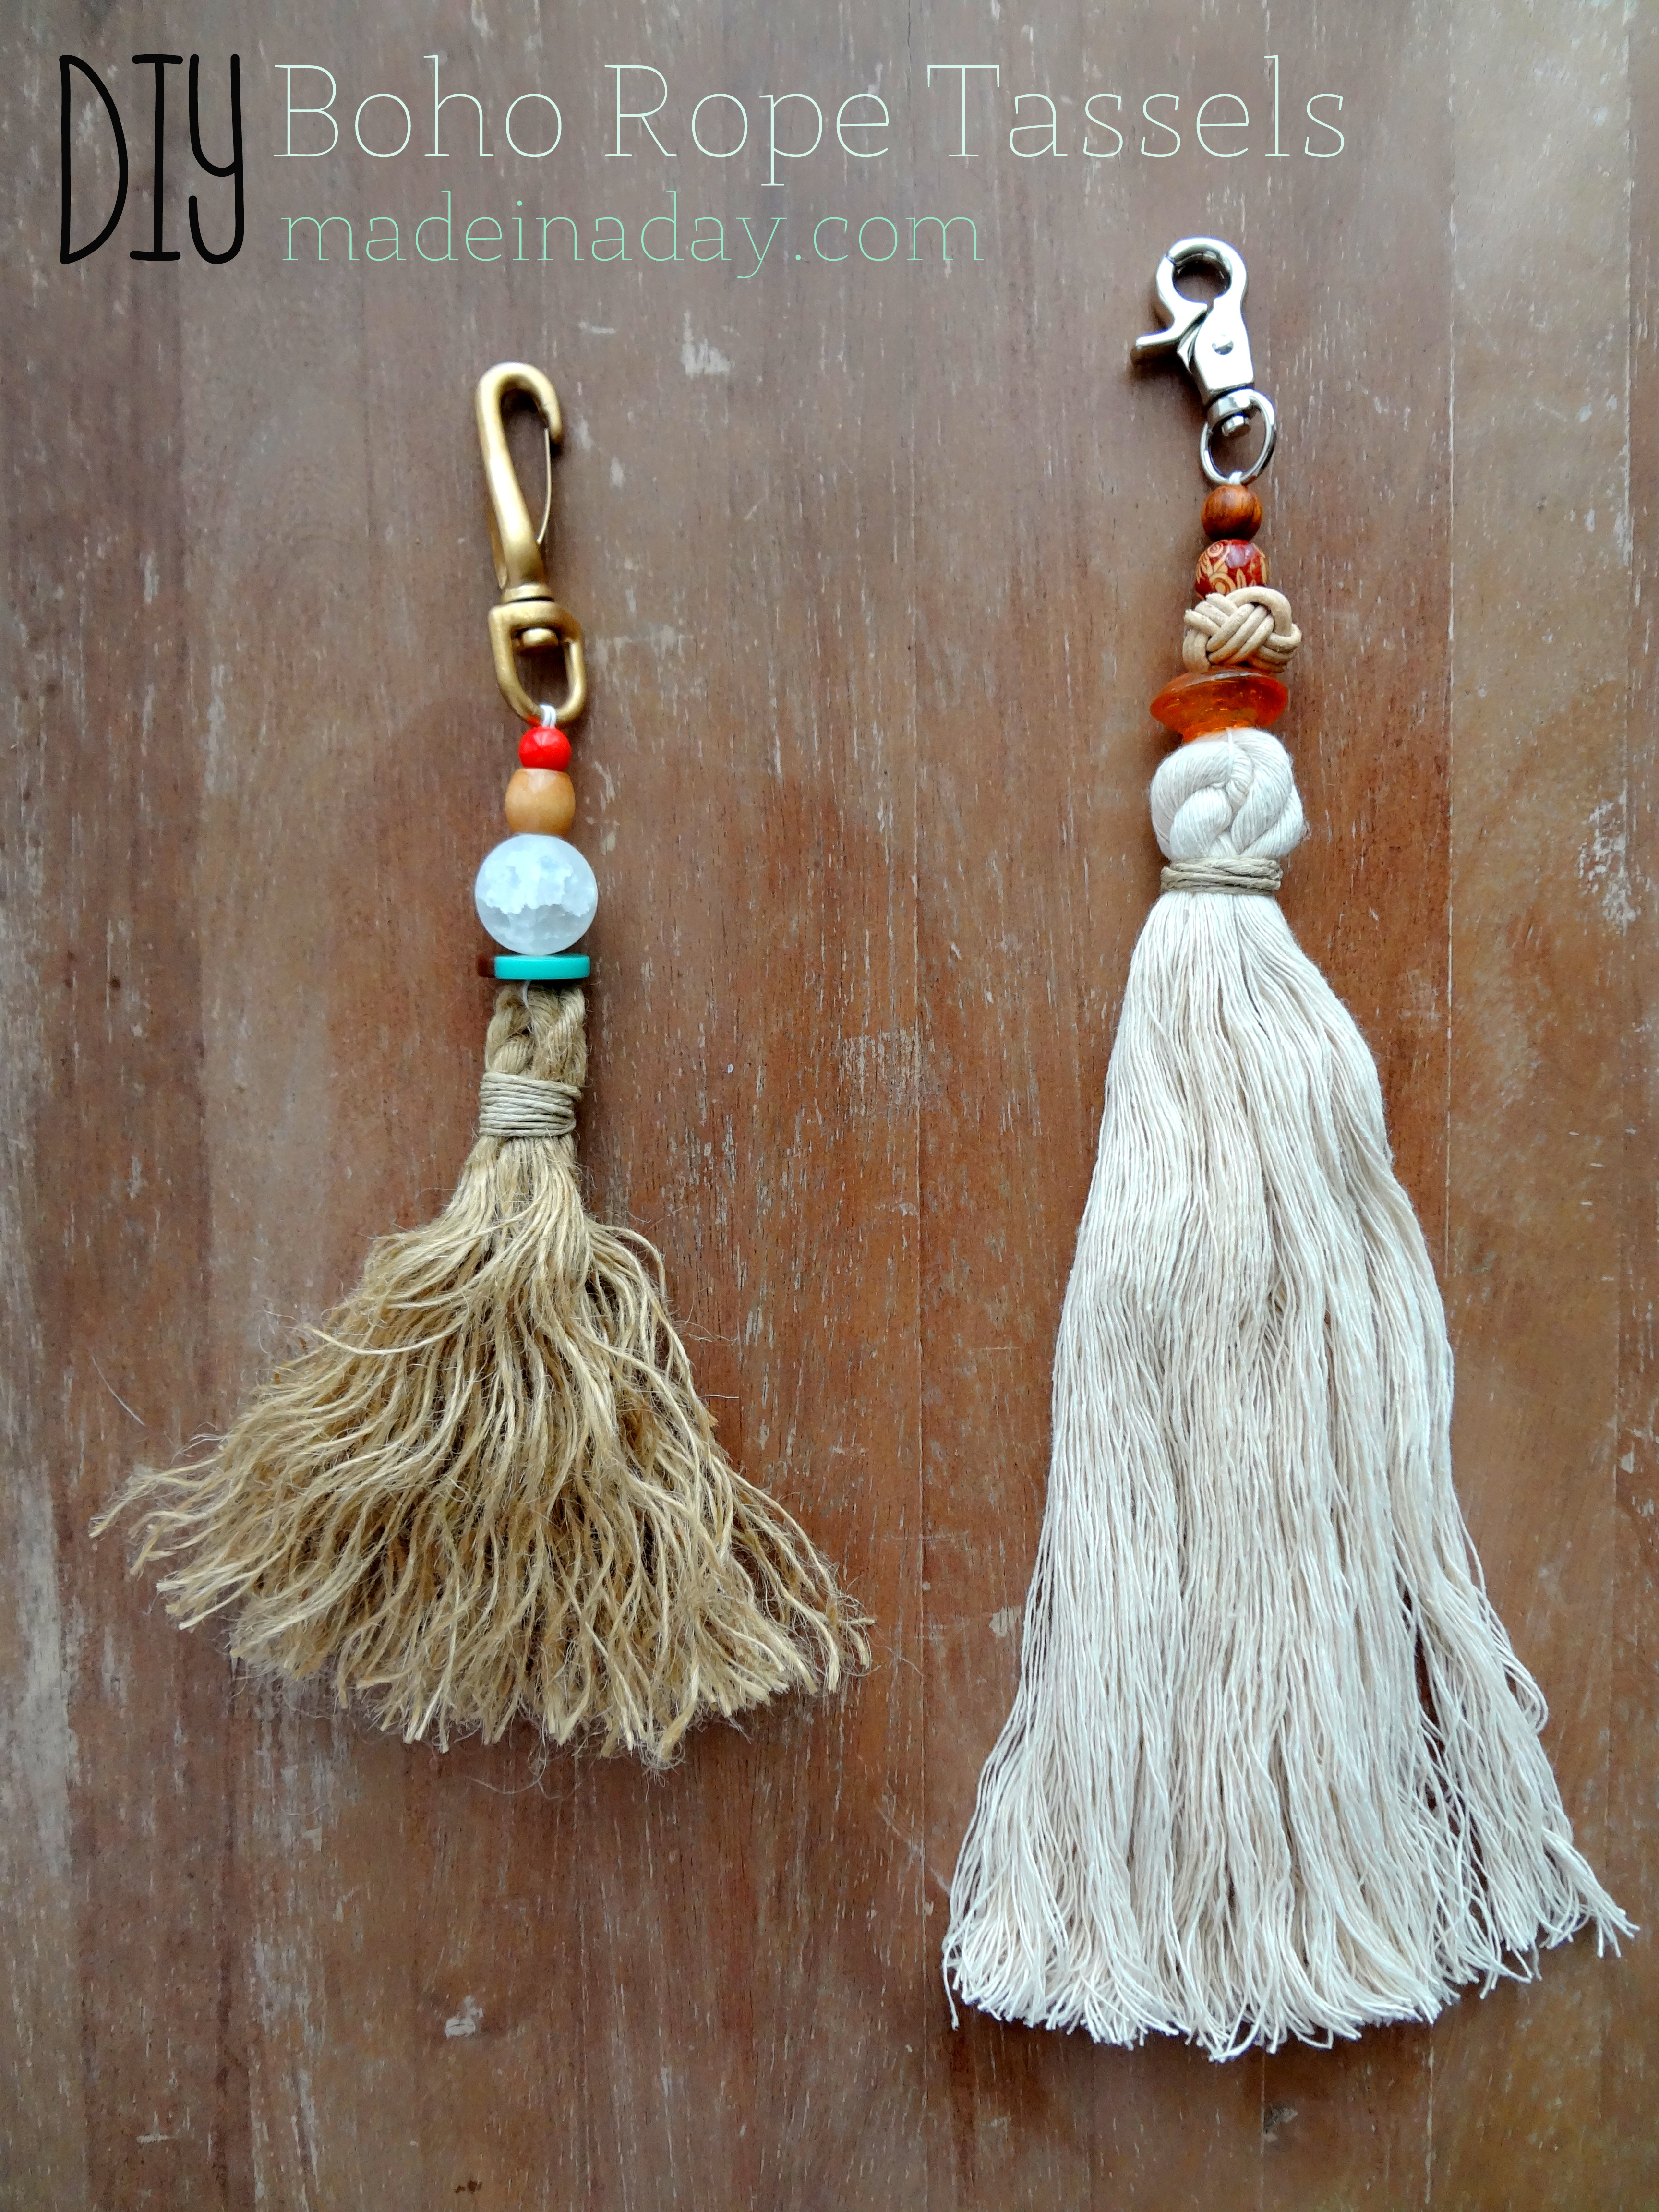 Bohemian Rope Tassels | Made in a Day